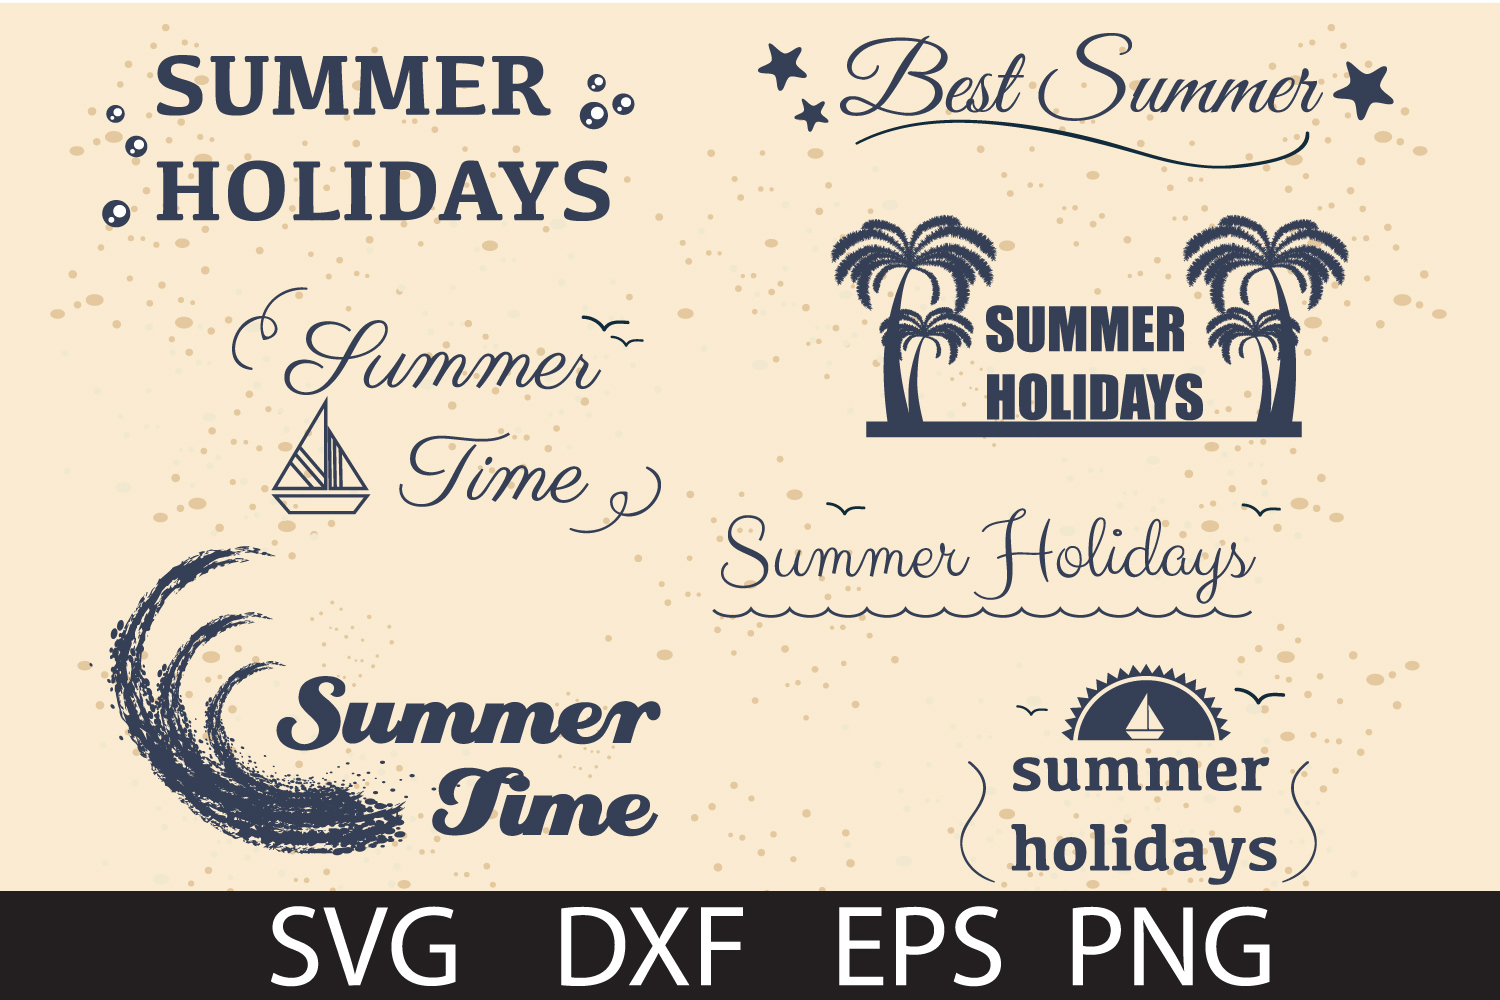 SUMMER HOLIDAY PACK SVG DXF PNG EPS example image 1